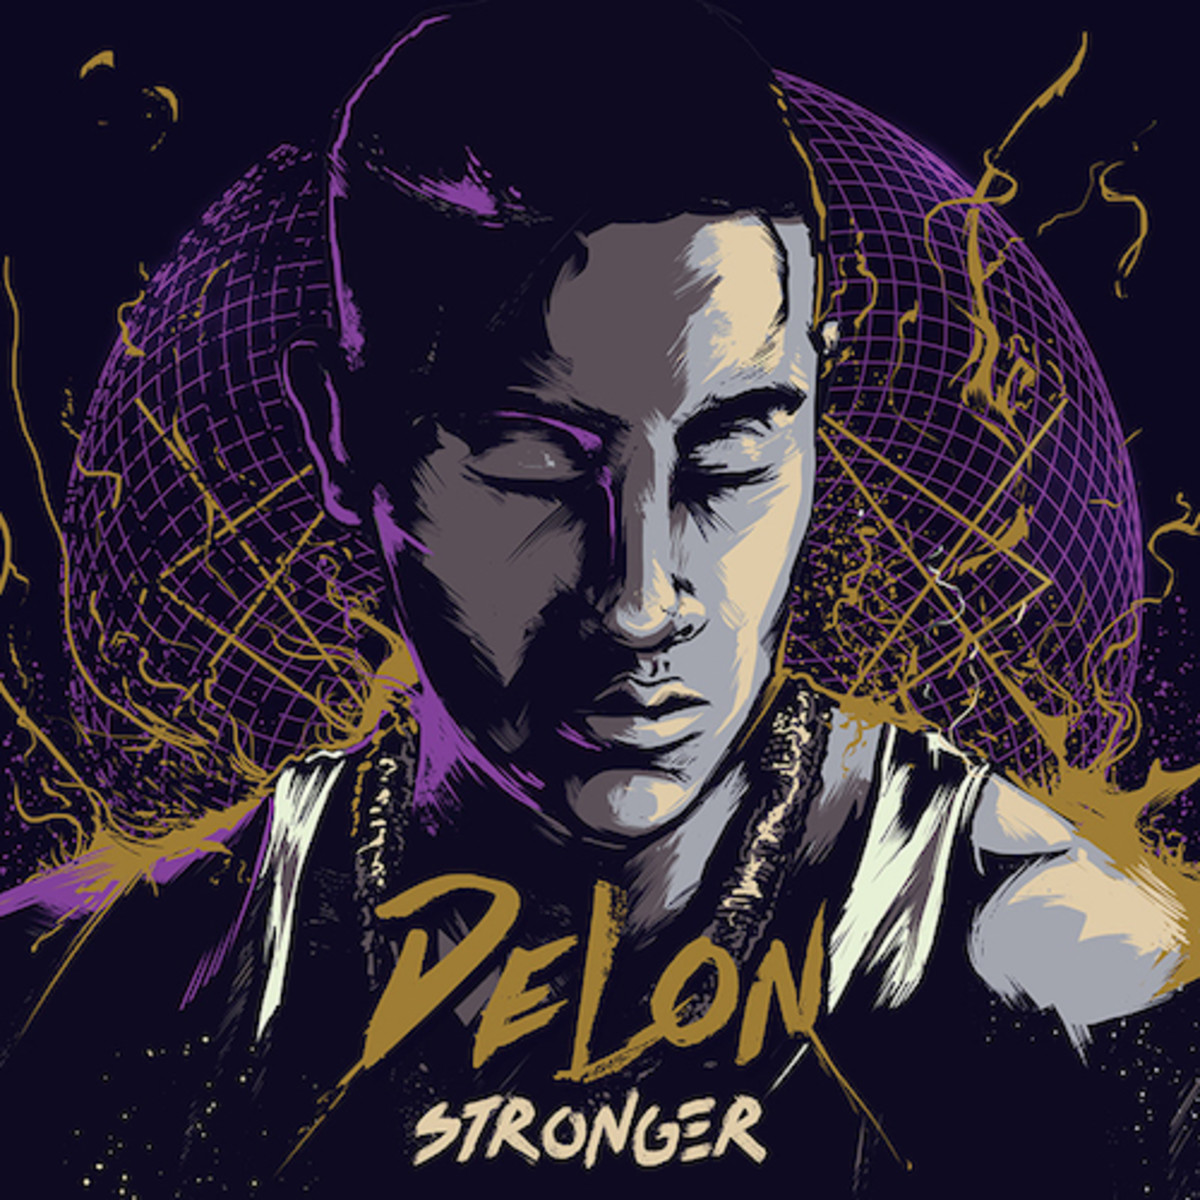 delon-stronger1.jpg